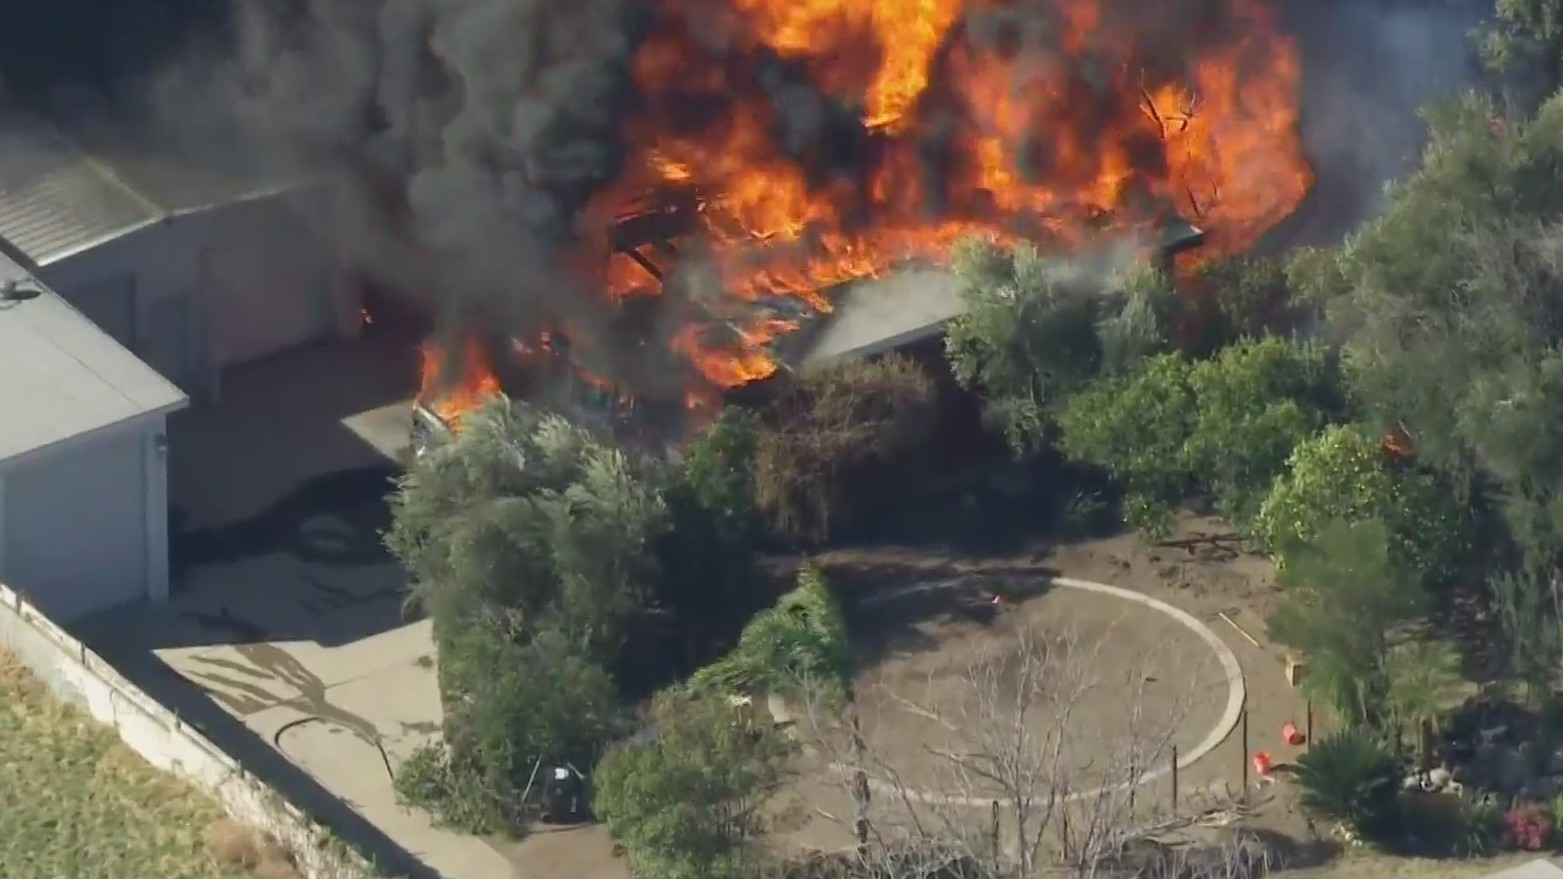 Firefighters respond to a blaze in Sylmar on Jan. 15, 2021. (KTLA)